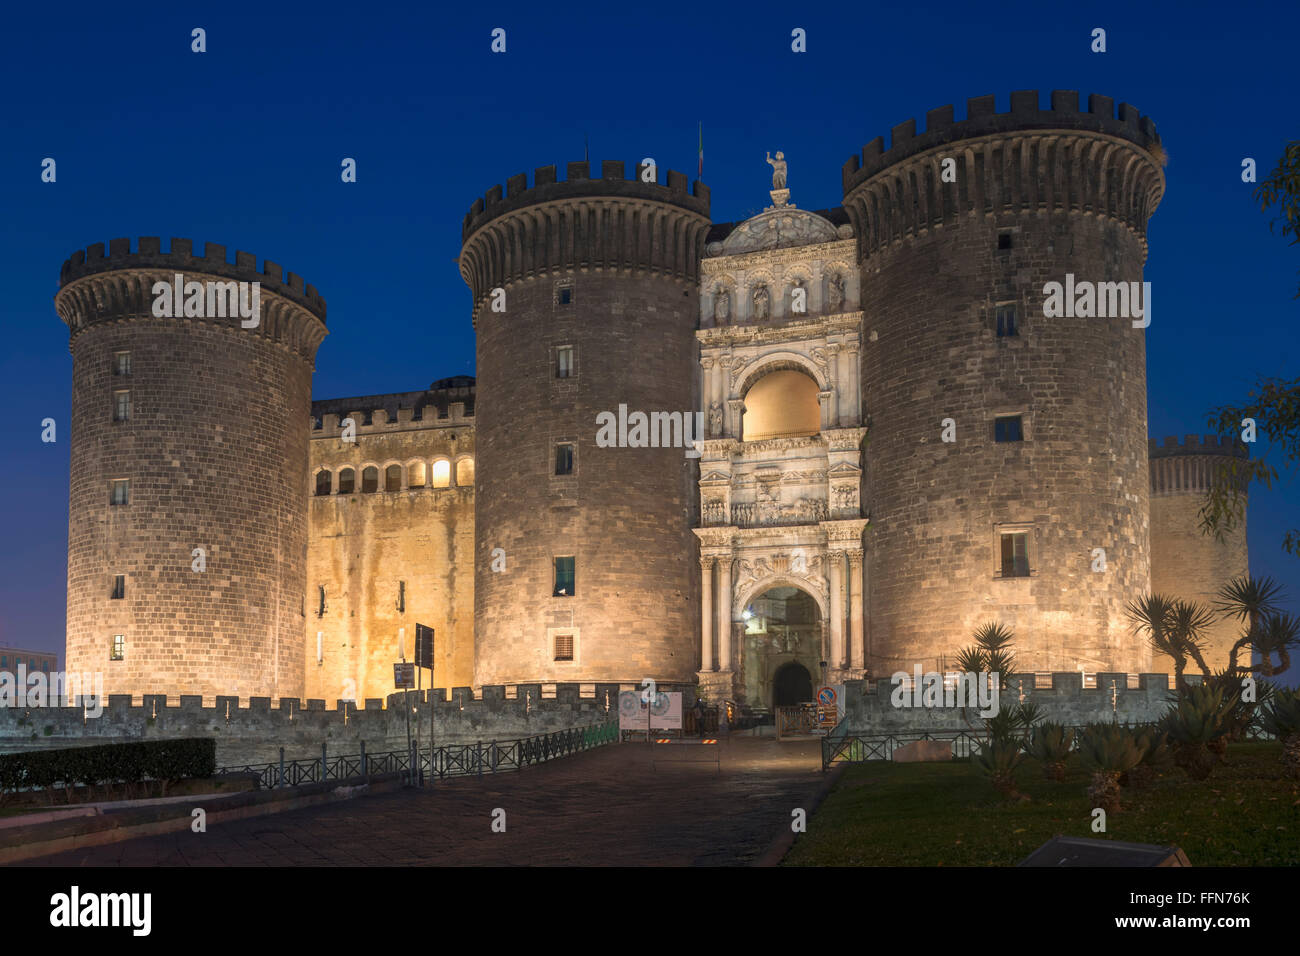 Castel Nuovo, Naples Italy, the New Castle often called Maschio Angioino in Naples, Italy, Europe at night - Stock Image